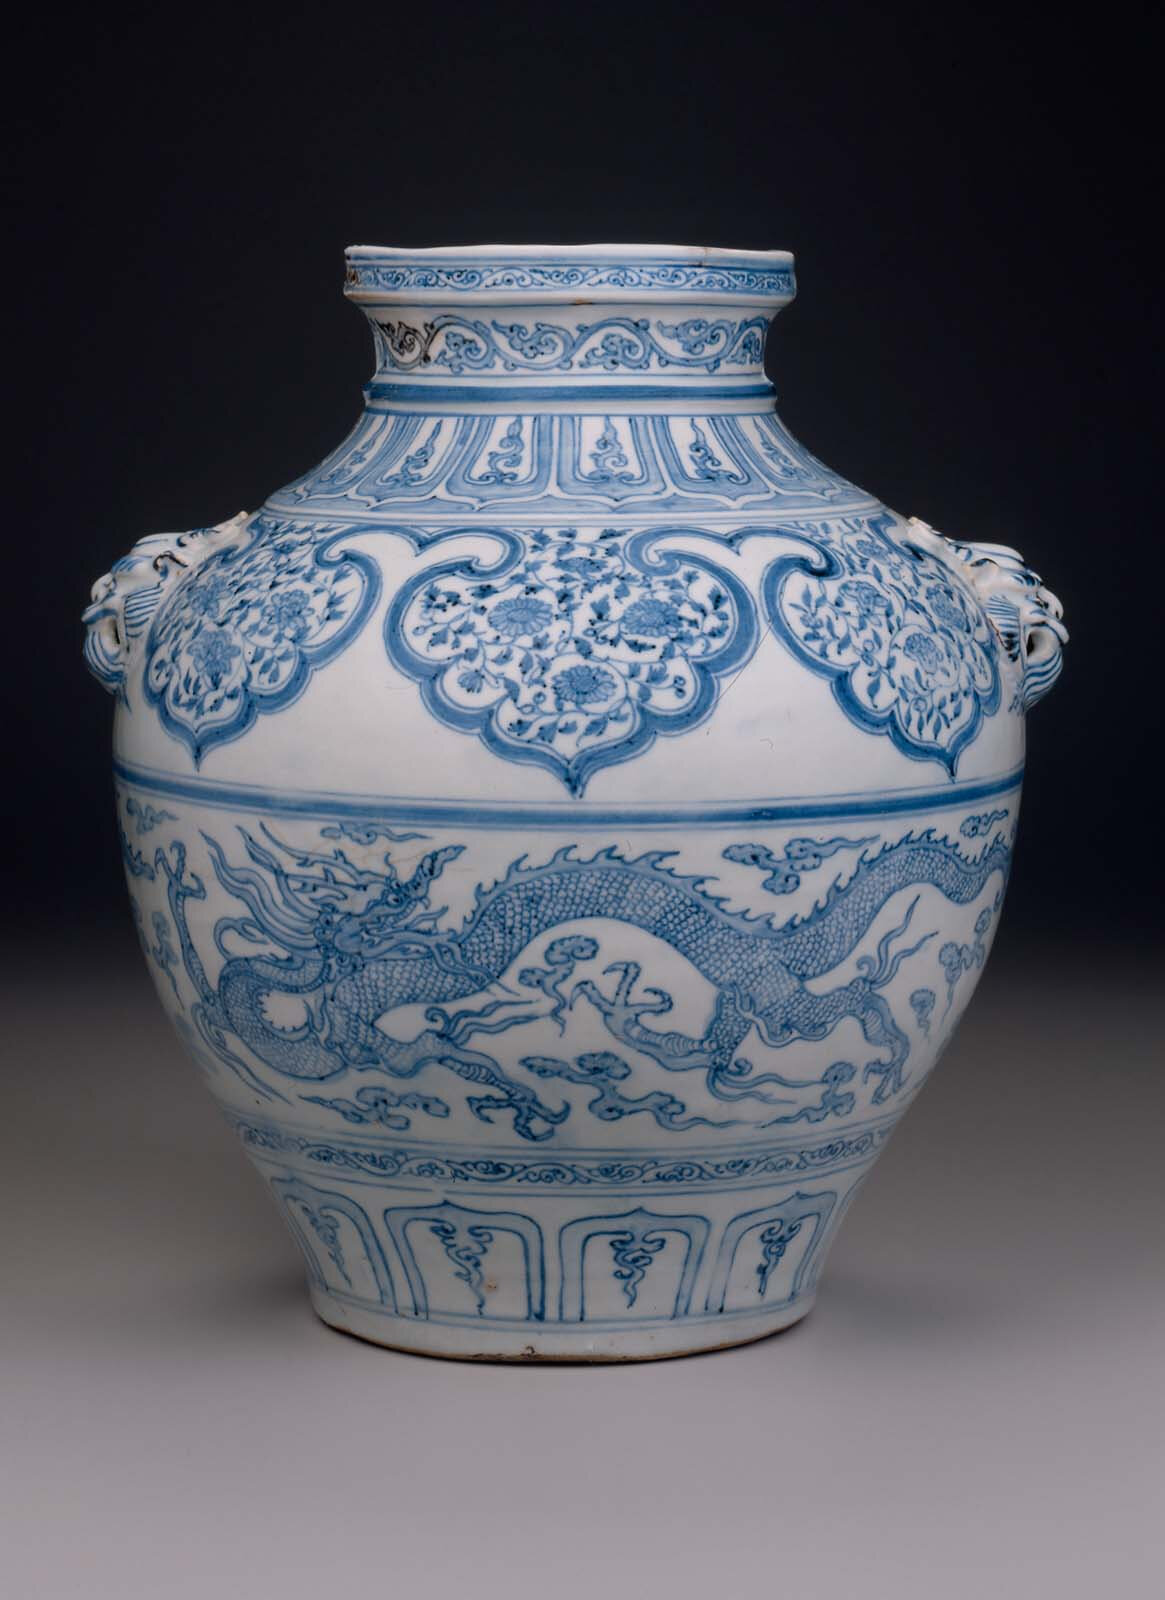 Guan-type jar with lion's-head handles, Yuan dynasty, mid-14th century